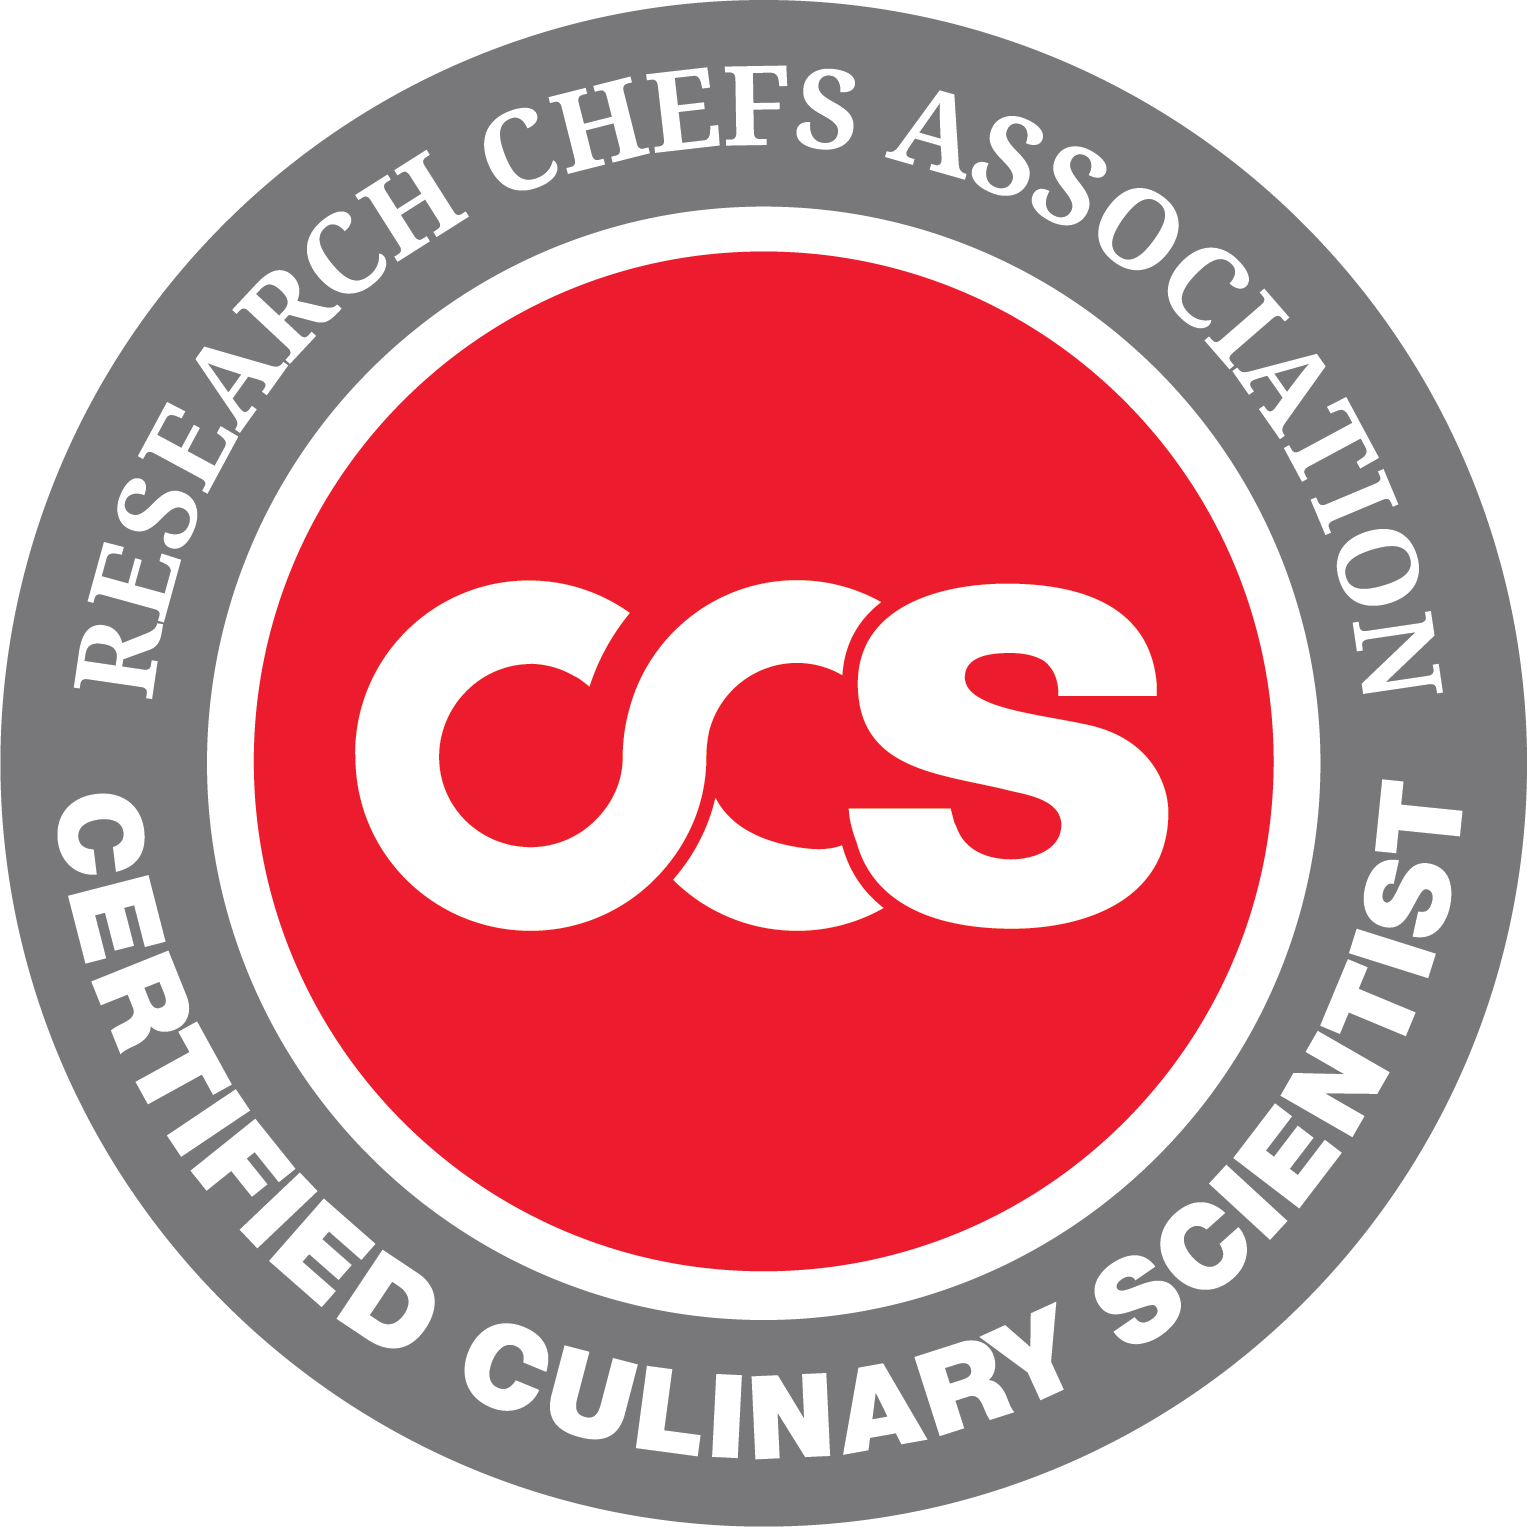 Research Chefs Association Certified Culinary Scientist